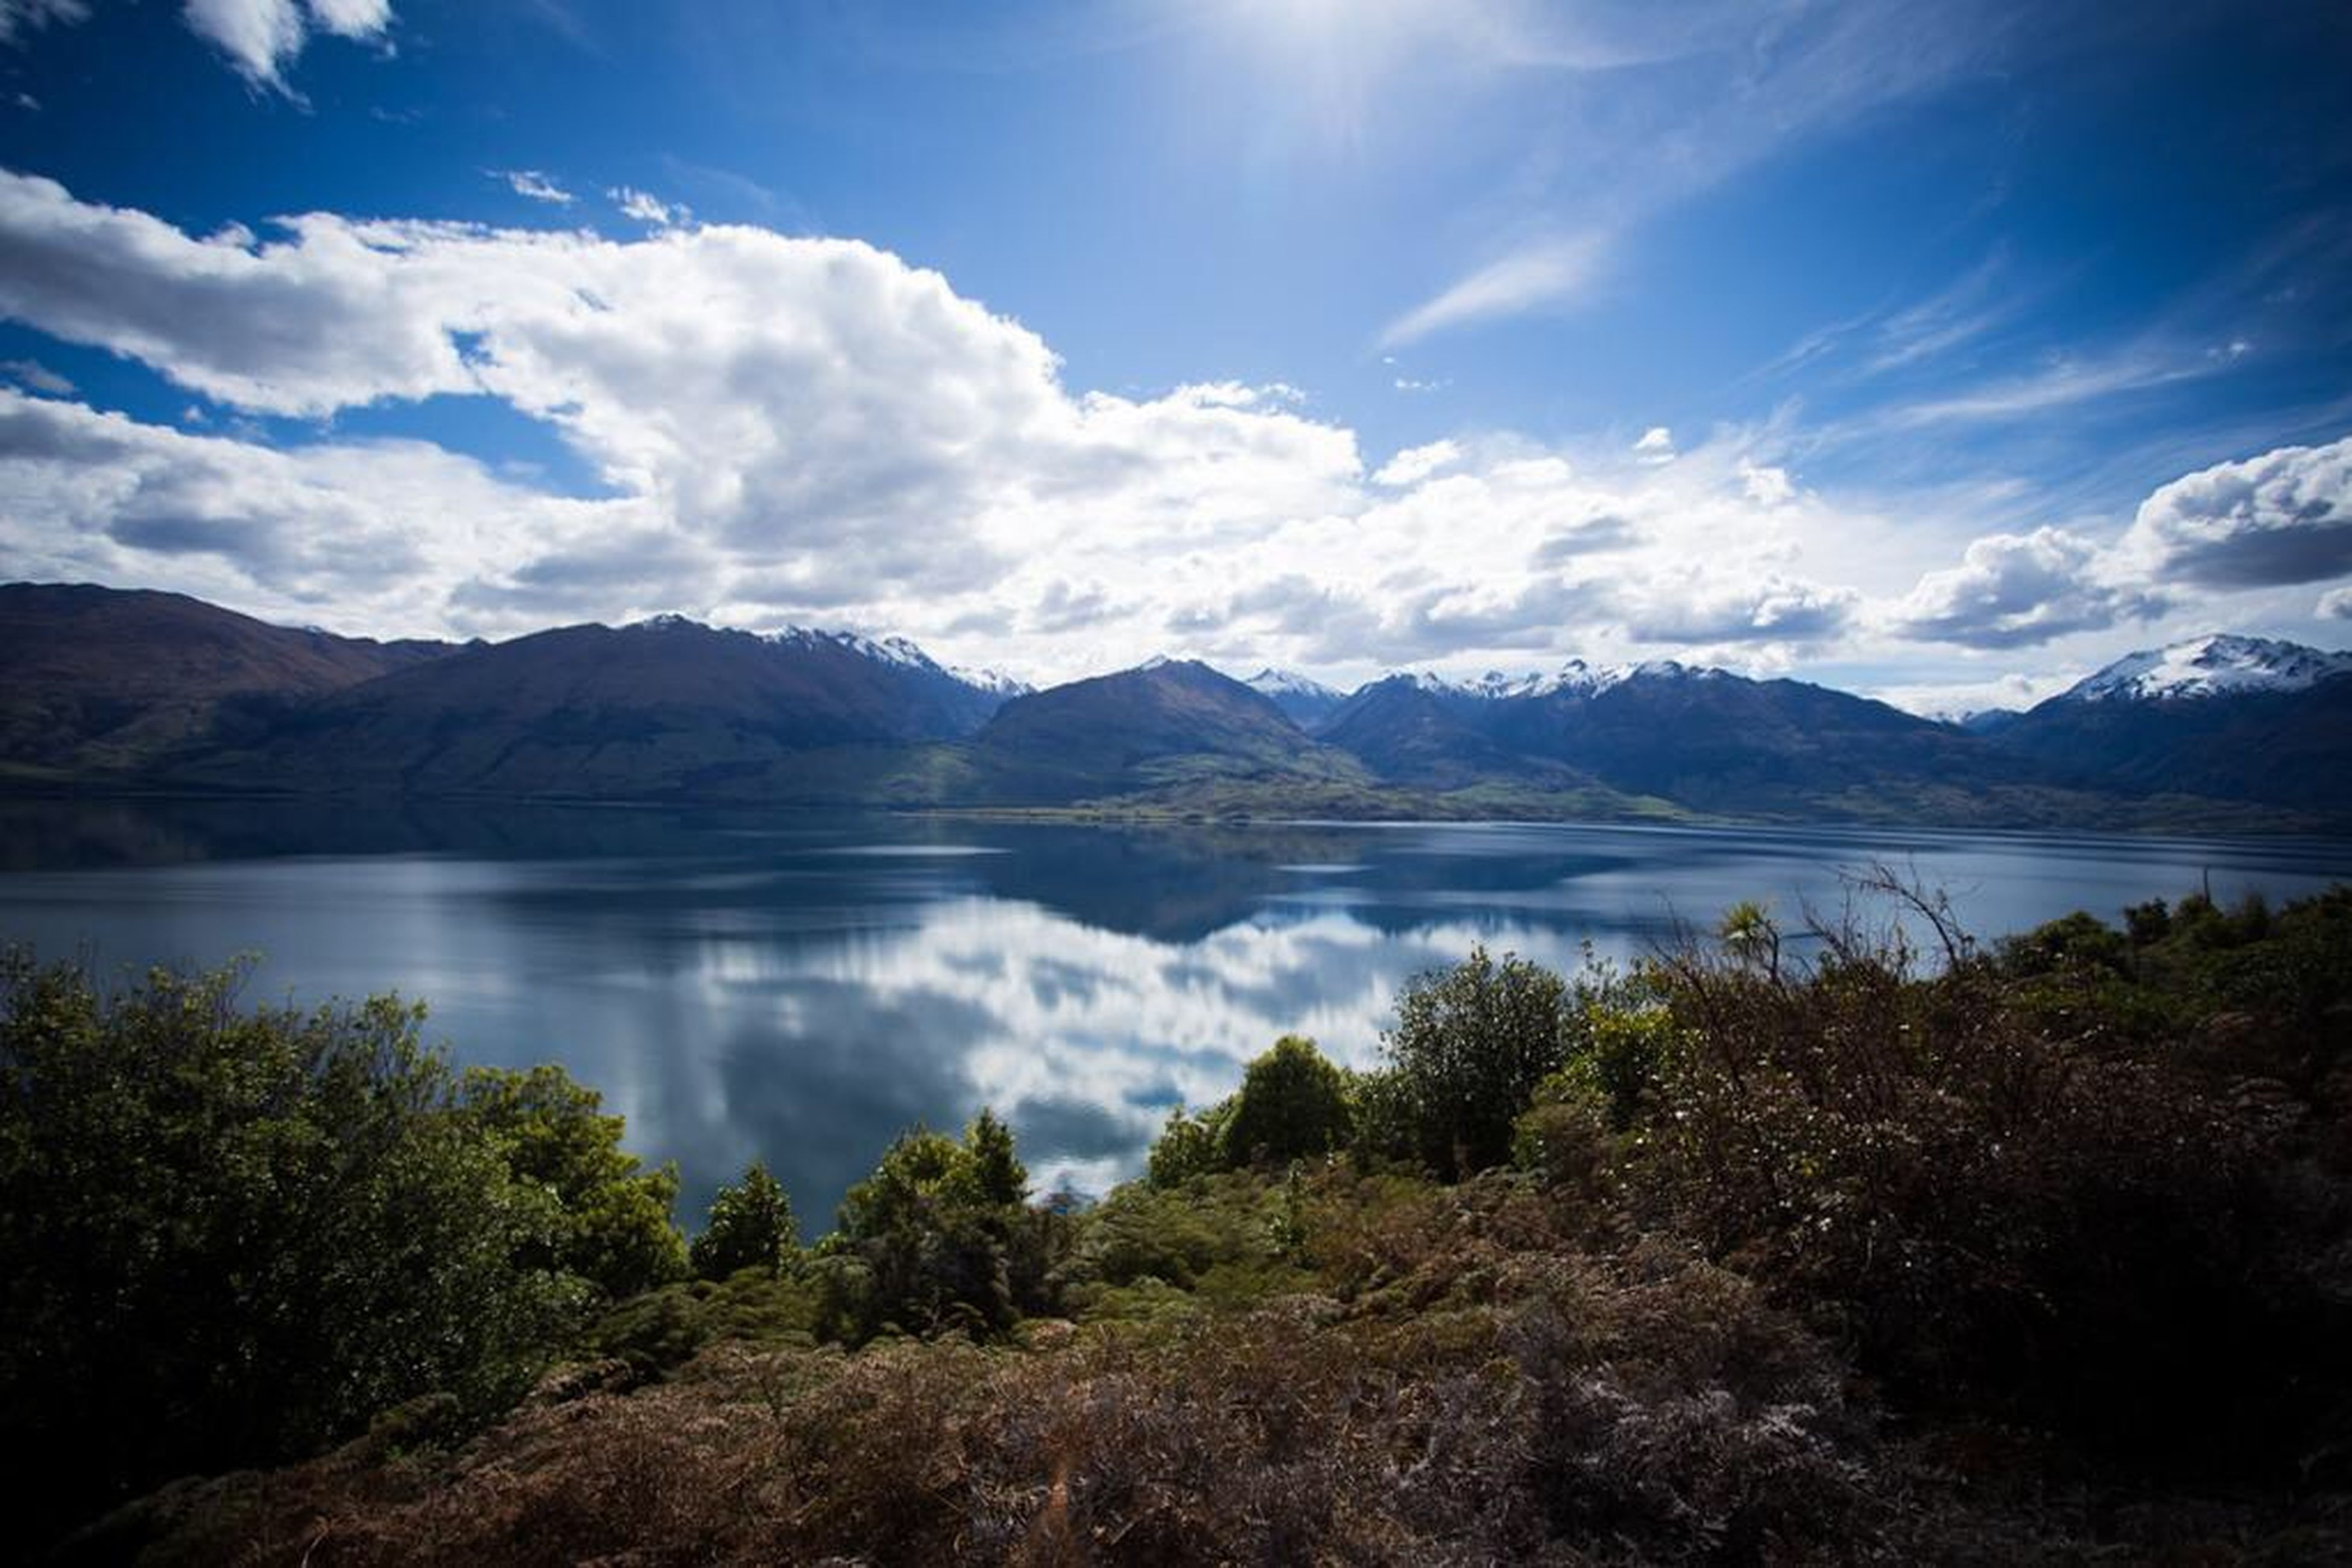 mountain, mountain range, tranquil scene, lake, tranquility, scenics, water, sky, beauty in nature, reflection, cloud - sky, nature, cloud, idyllic, landscape, non-urban scene, calm, outdoors, majestic, lakeshore